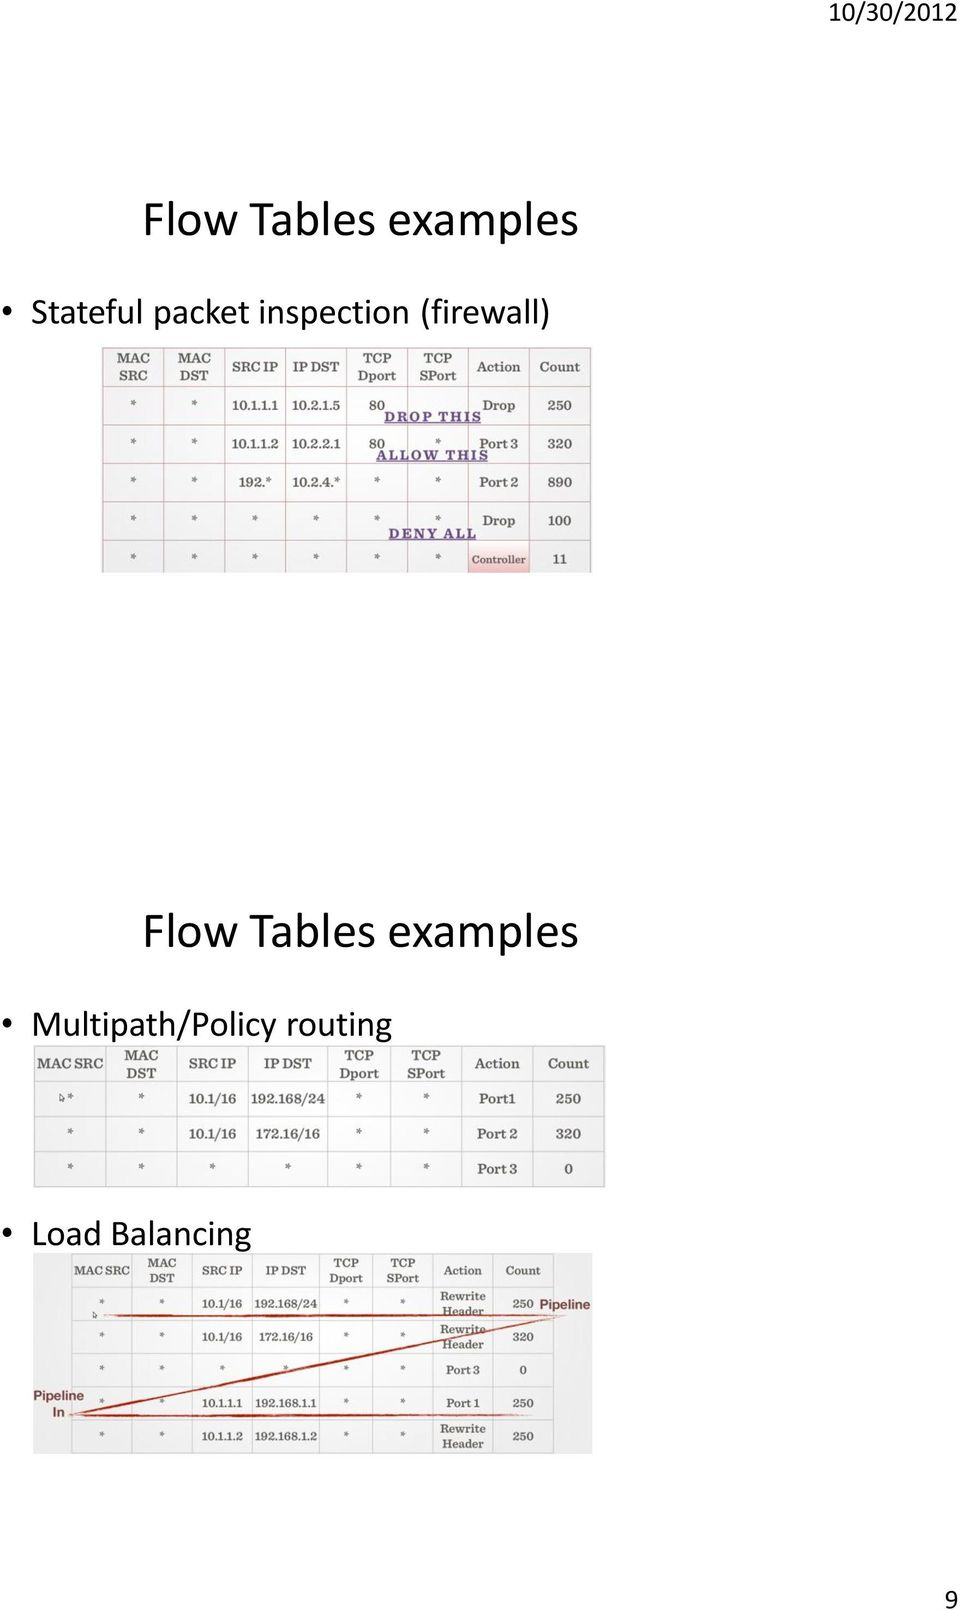 Flow Tables examples